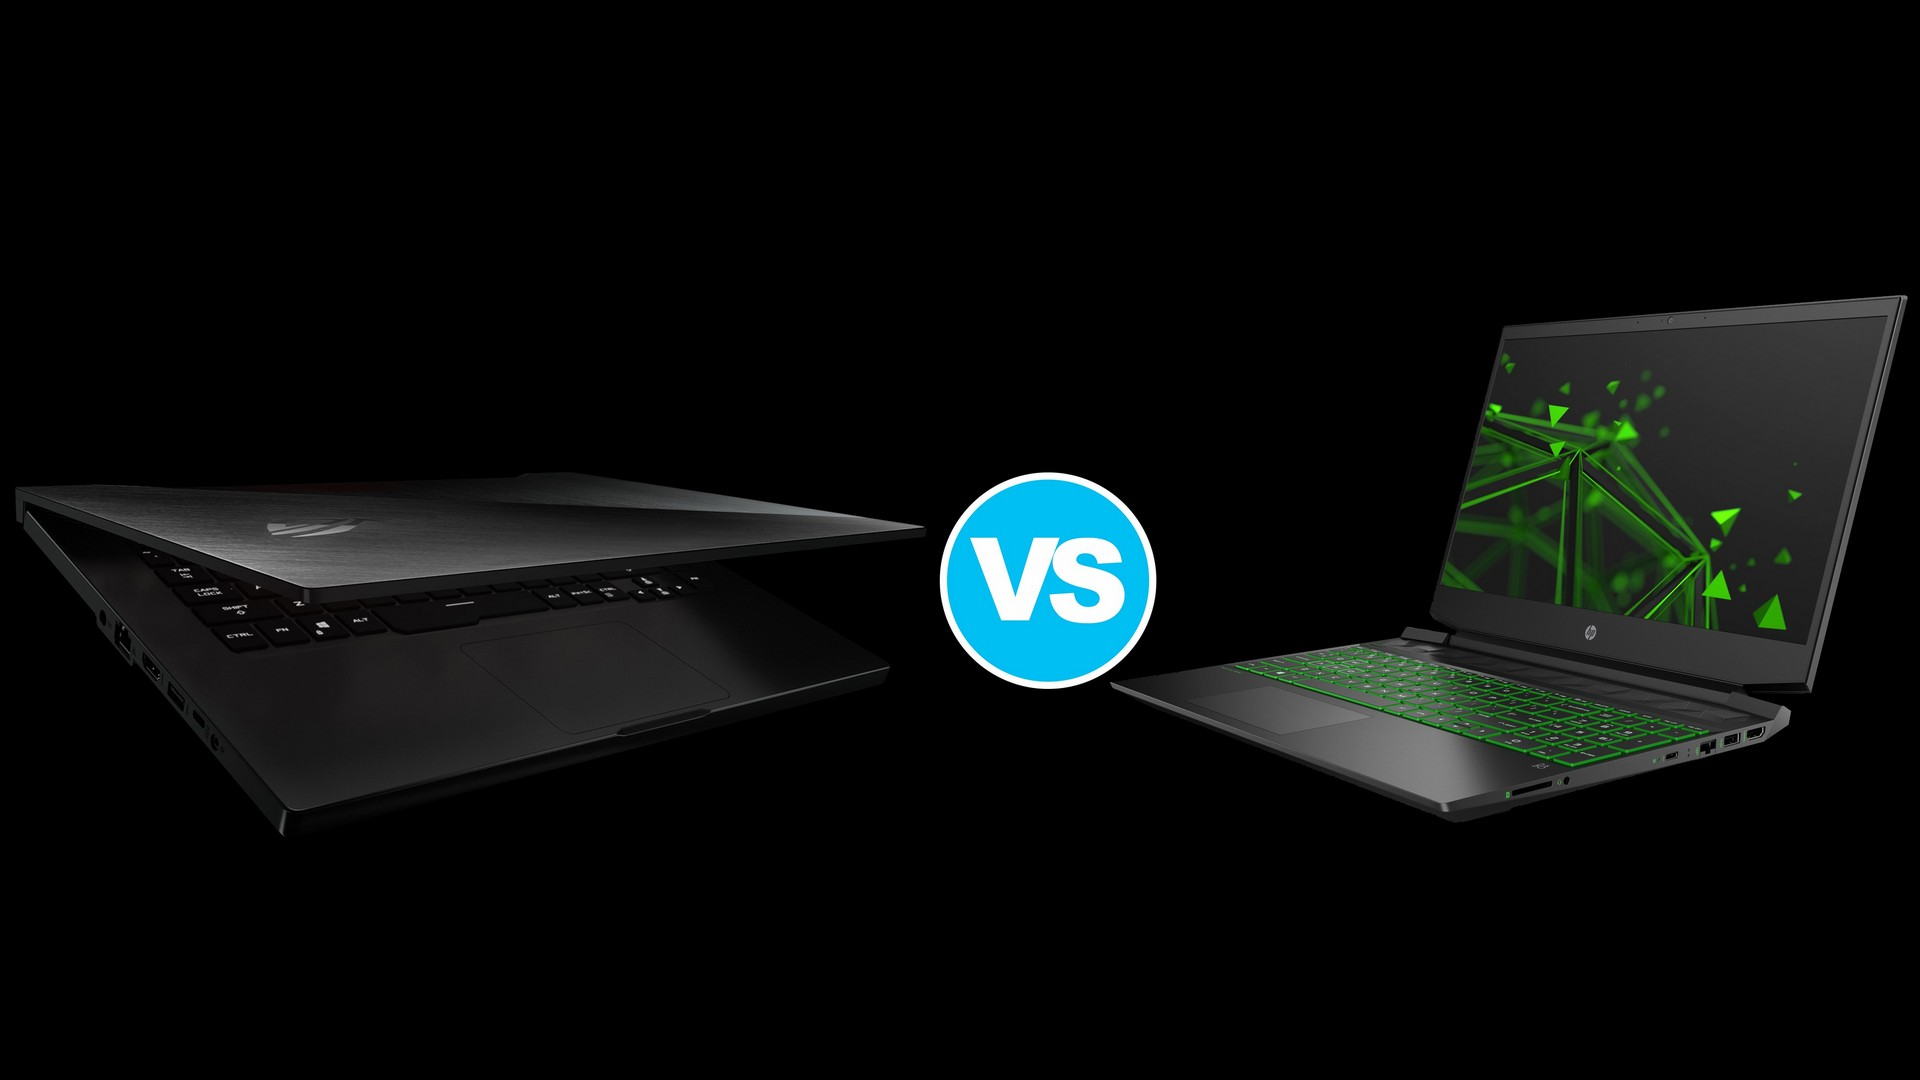 In Depth Comparison Asus Rog Zephyrus Ga502 Vs Hp Pavilion Gaming 15 15 Ec0000 The Hp Laptop Is One Of The Best Zen Machines That We Have Tested So Far